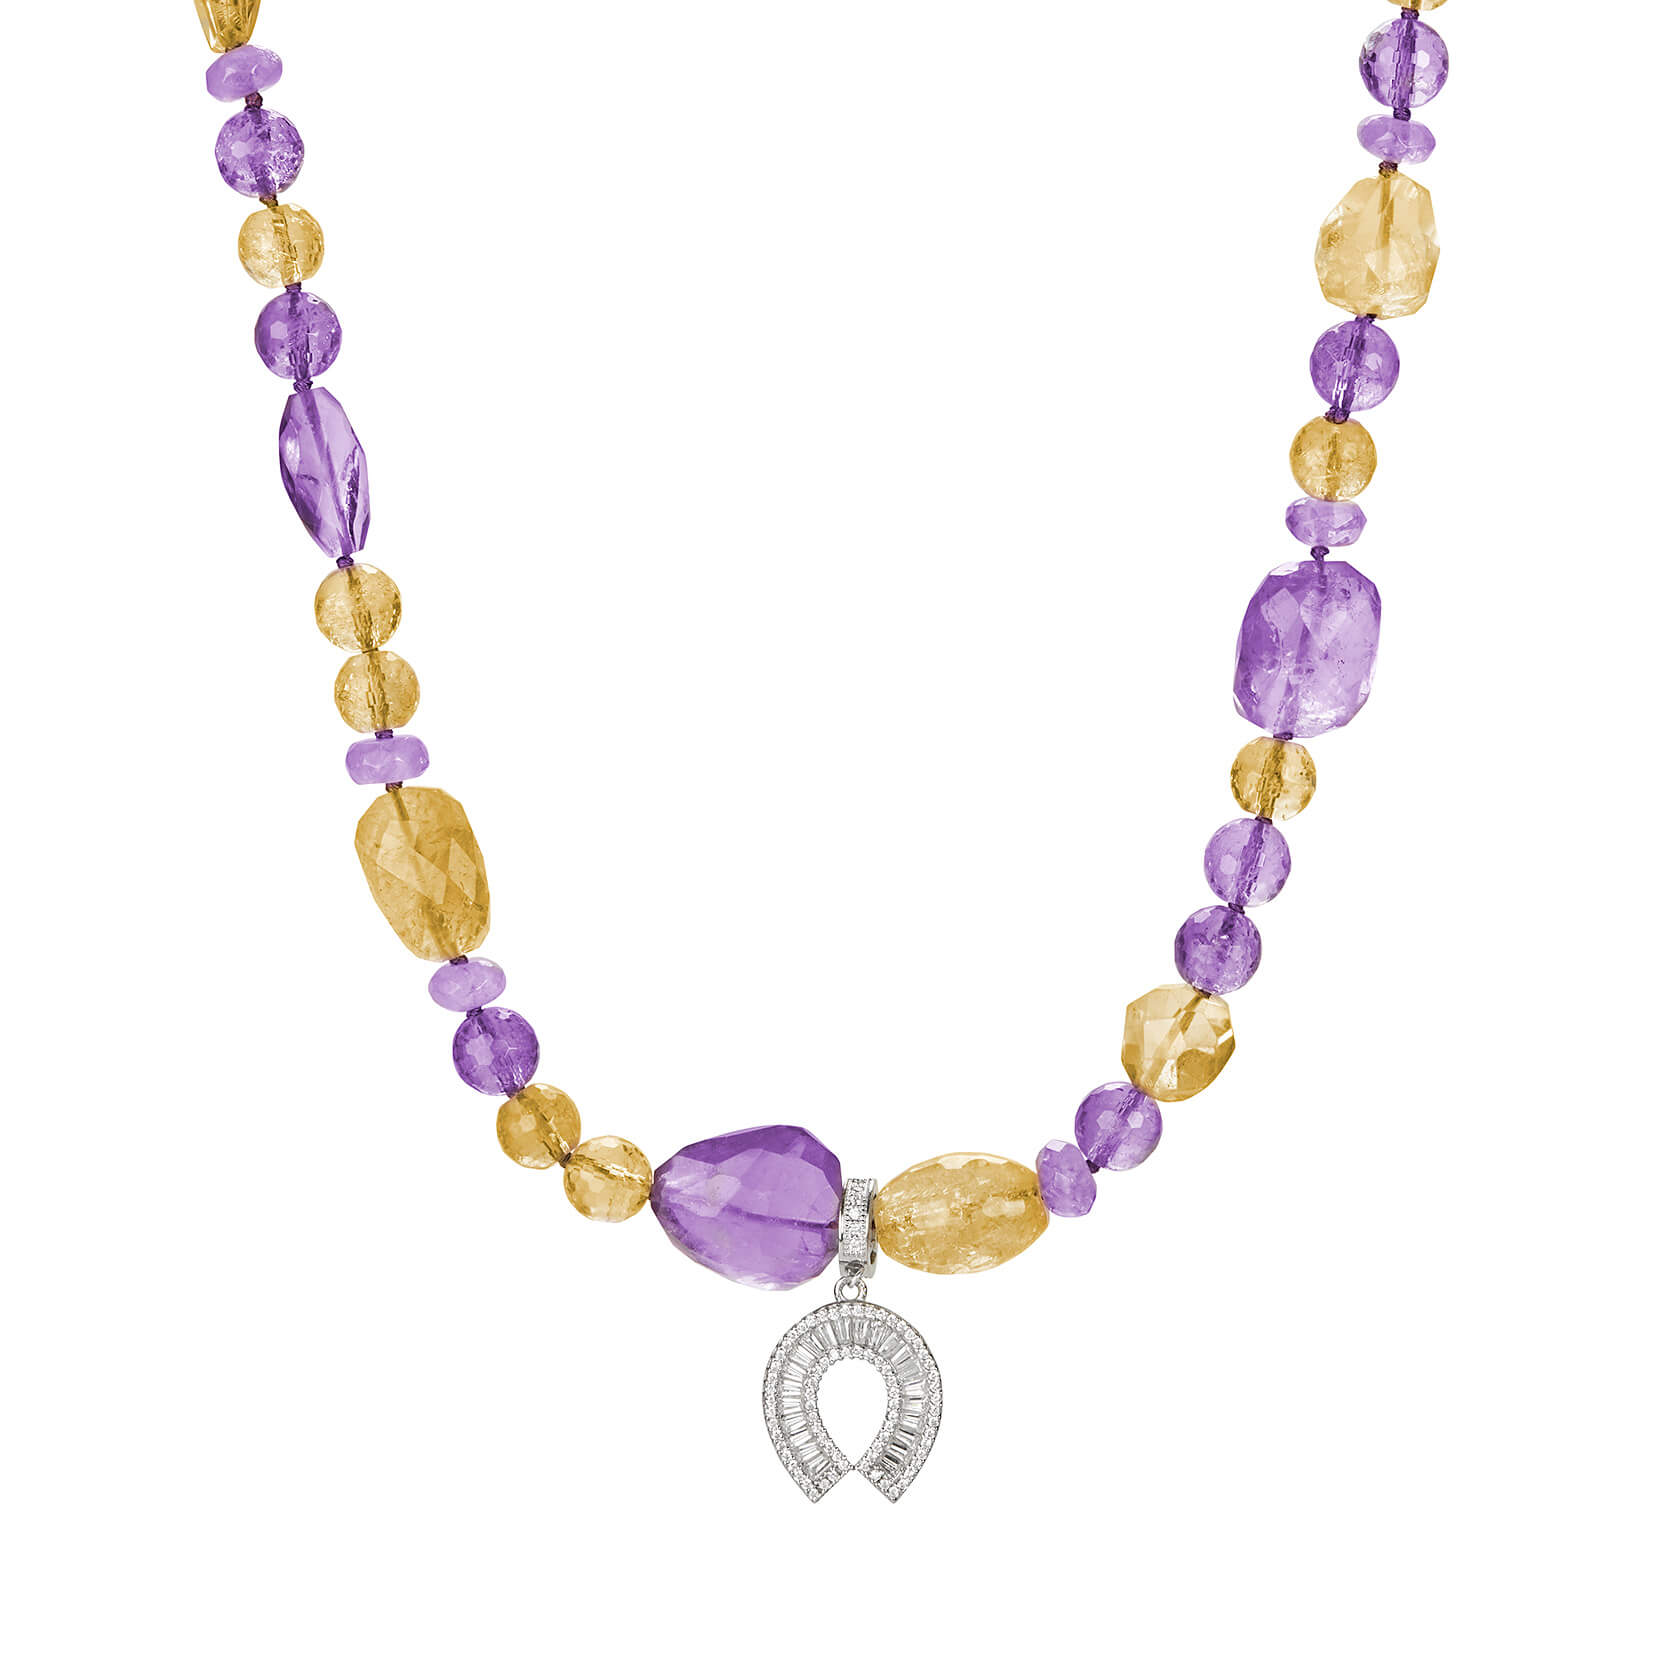 Short amethyst and citrine necklace